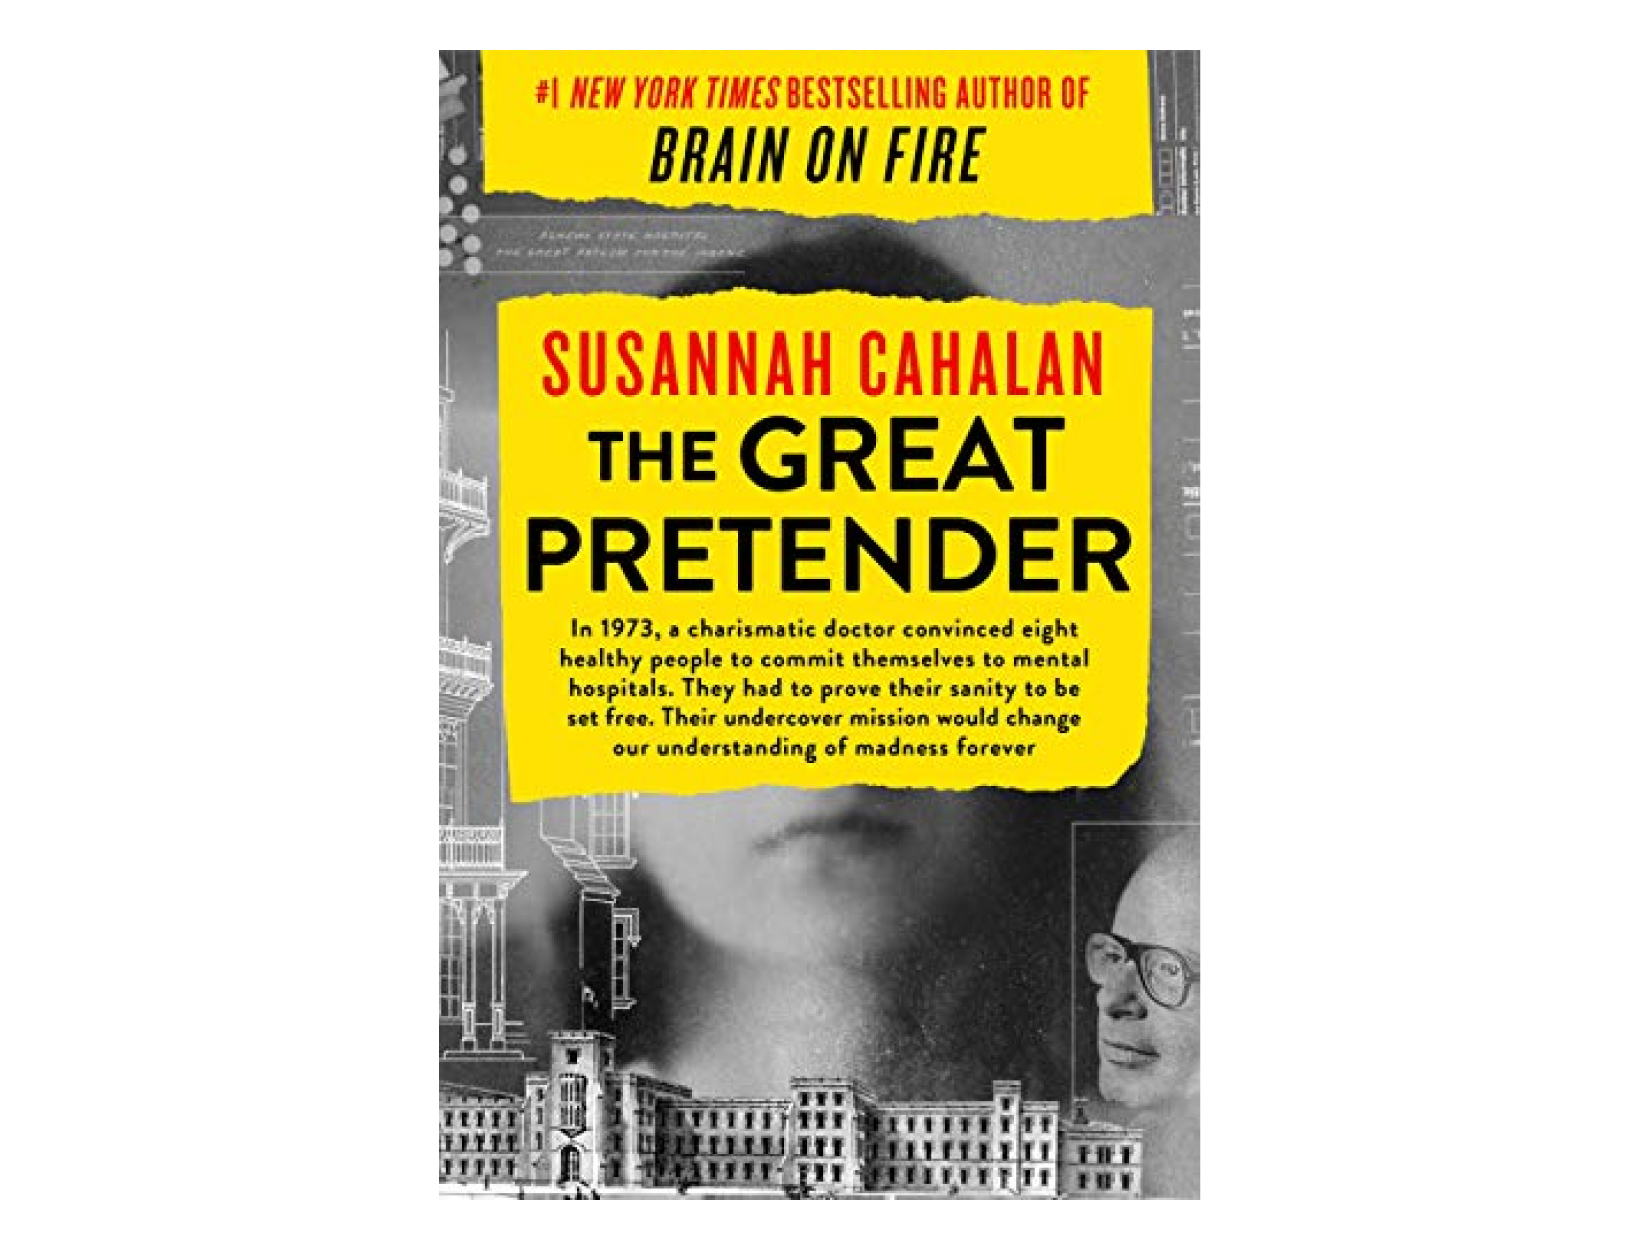 <em>The Great Pretender</em> by Susannah Cahalan